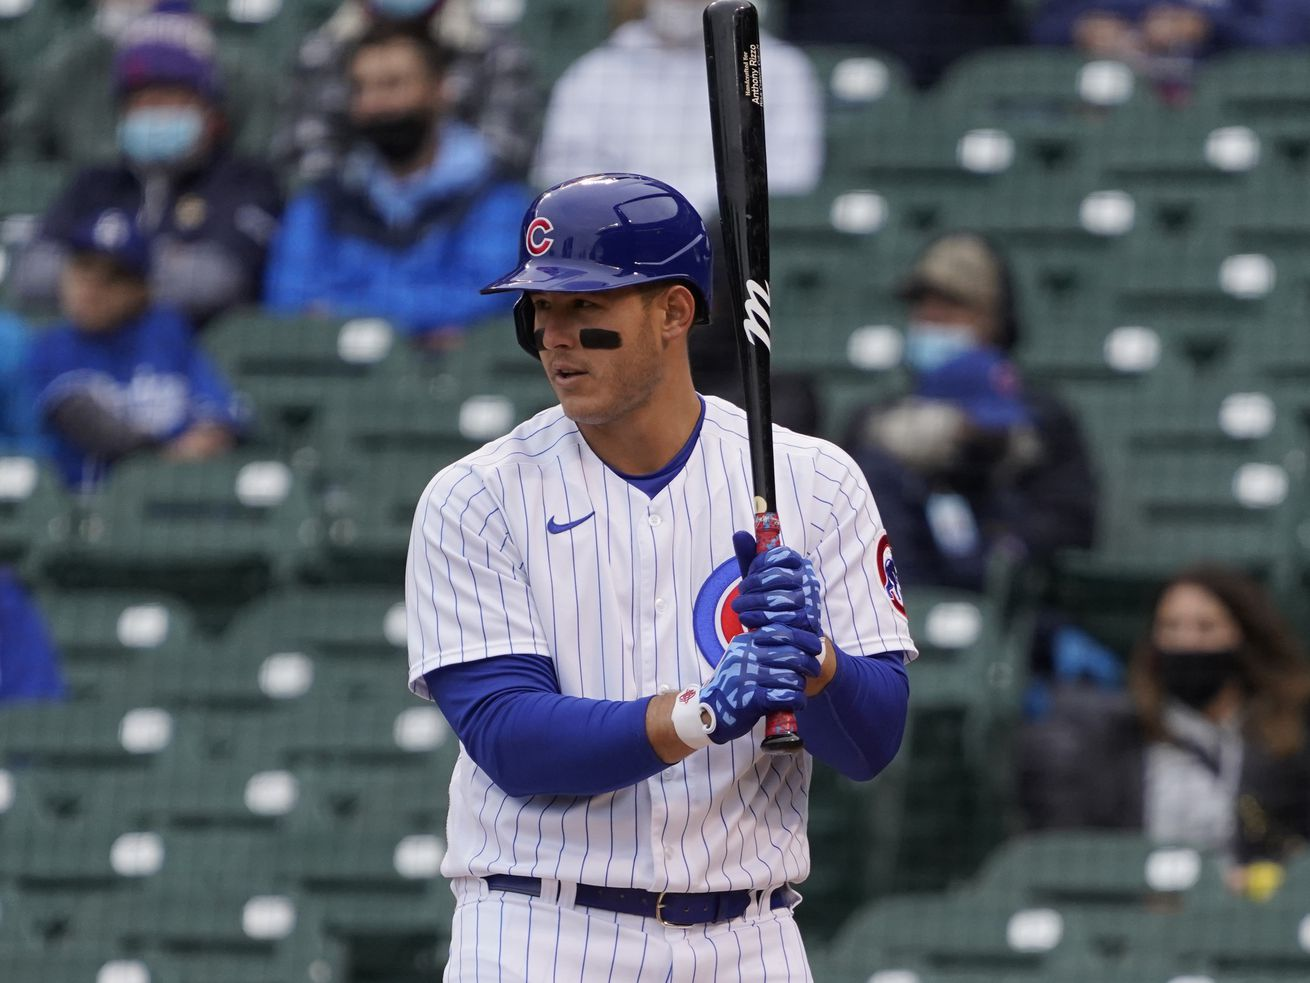 Cubs first baseman Anthony Rizzo said he has not received the COVID-19 vaccination.